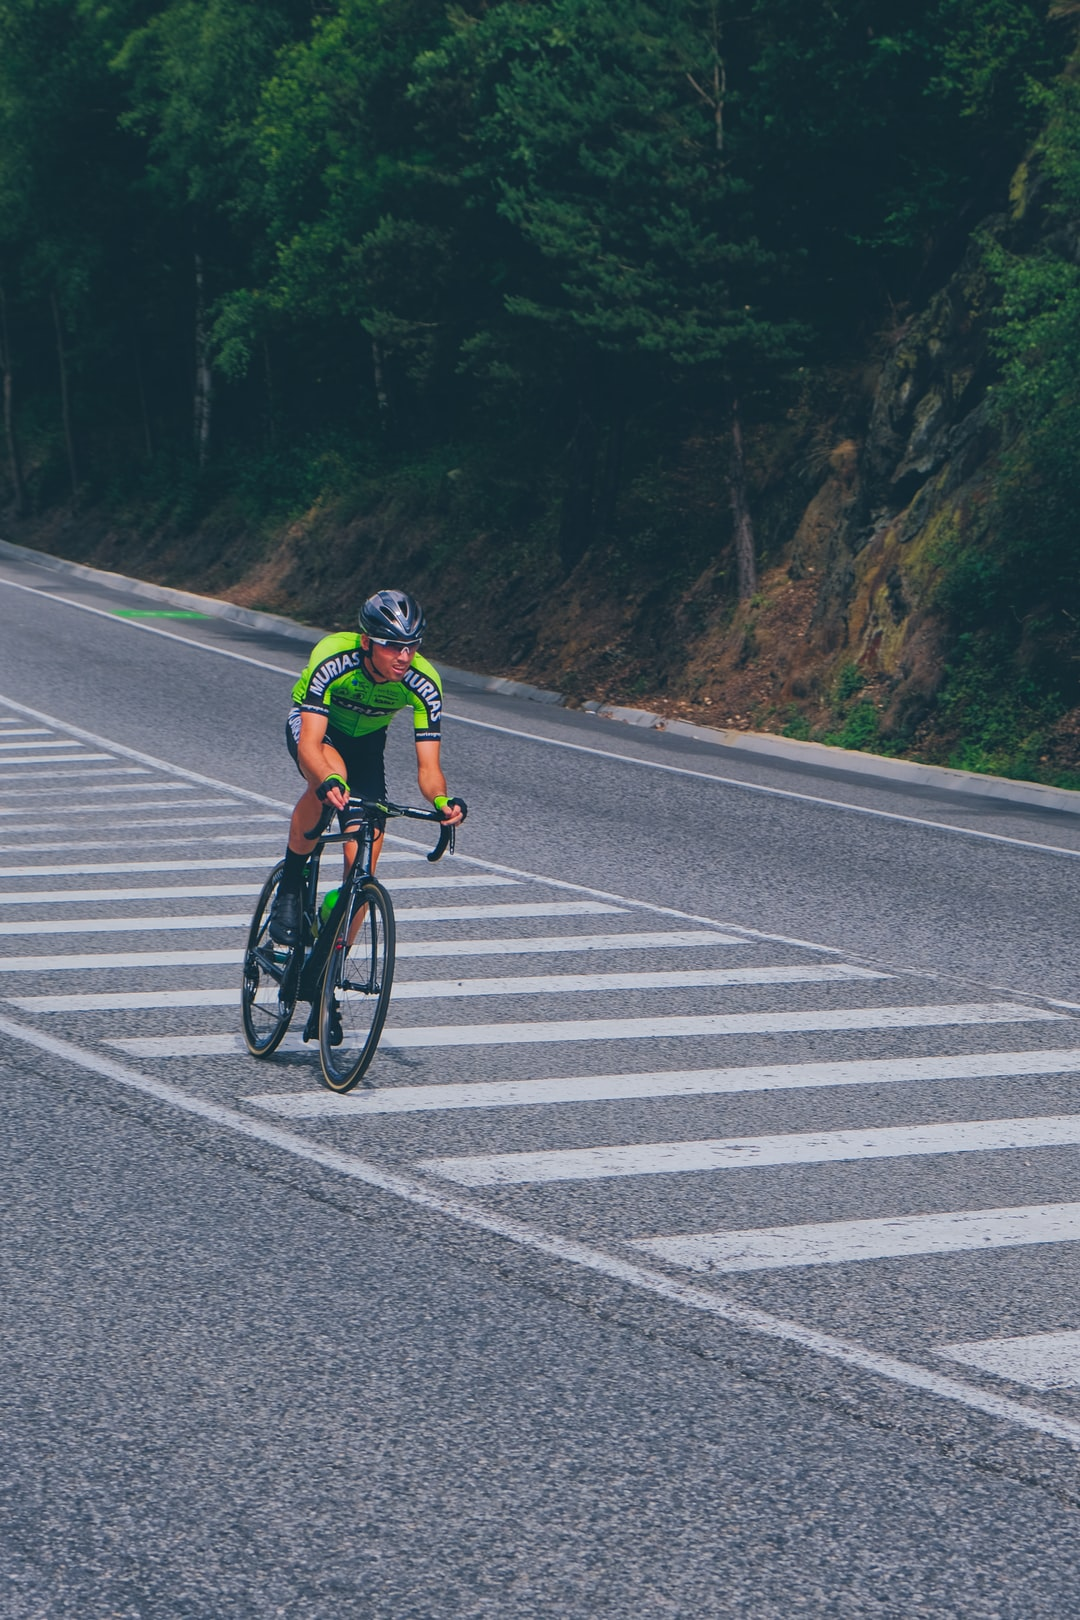 Cyril Barthe competing at the Stage 9 of La Vuelta 2019, in Andorra.